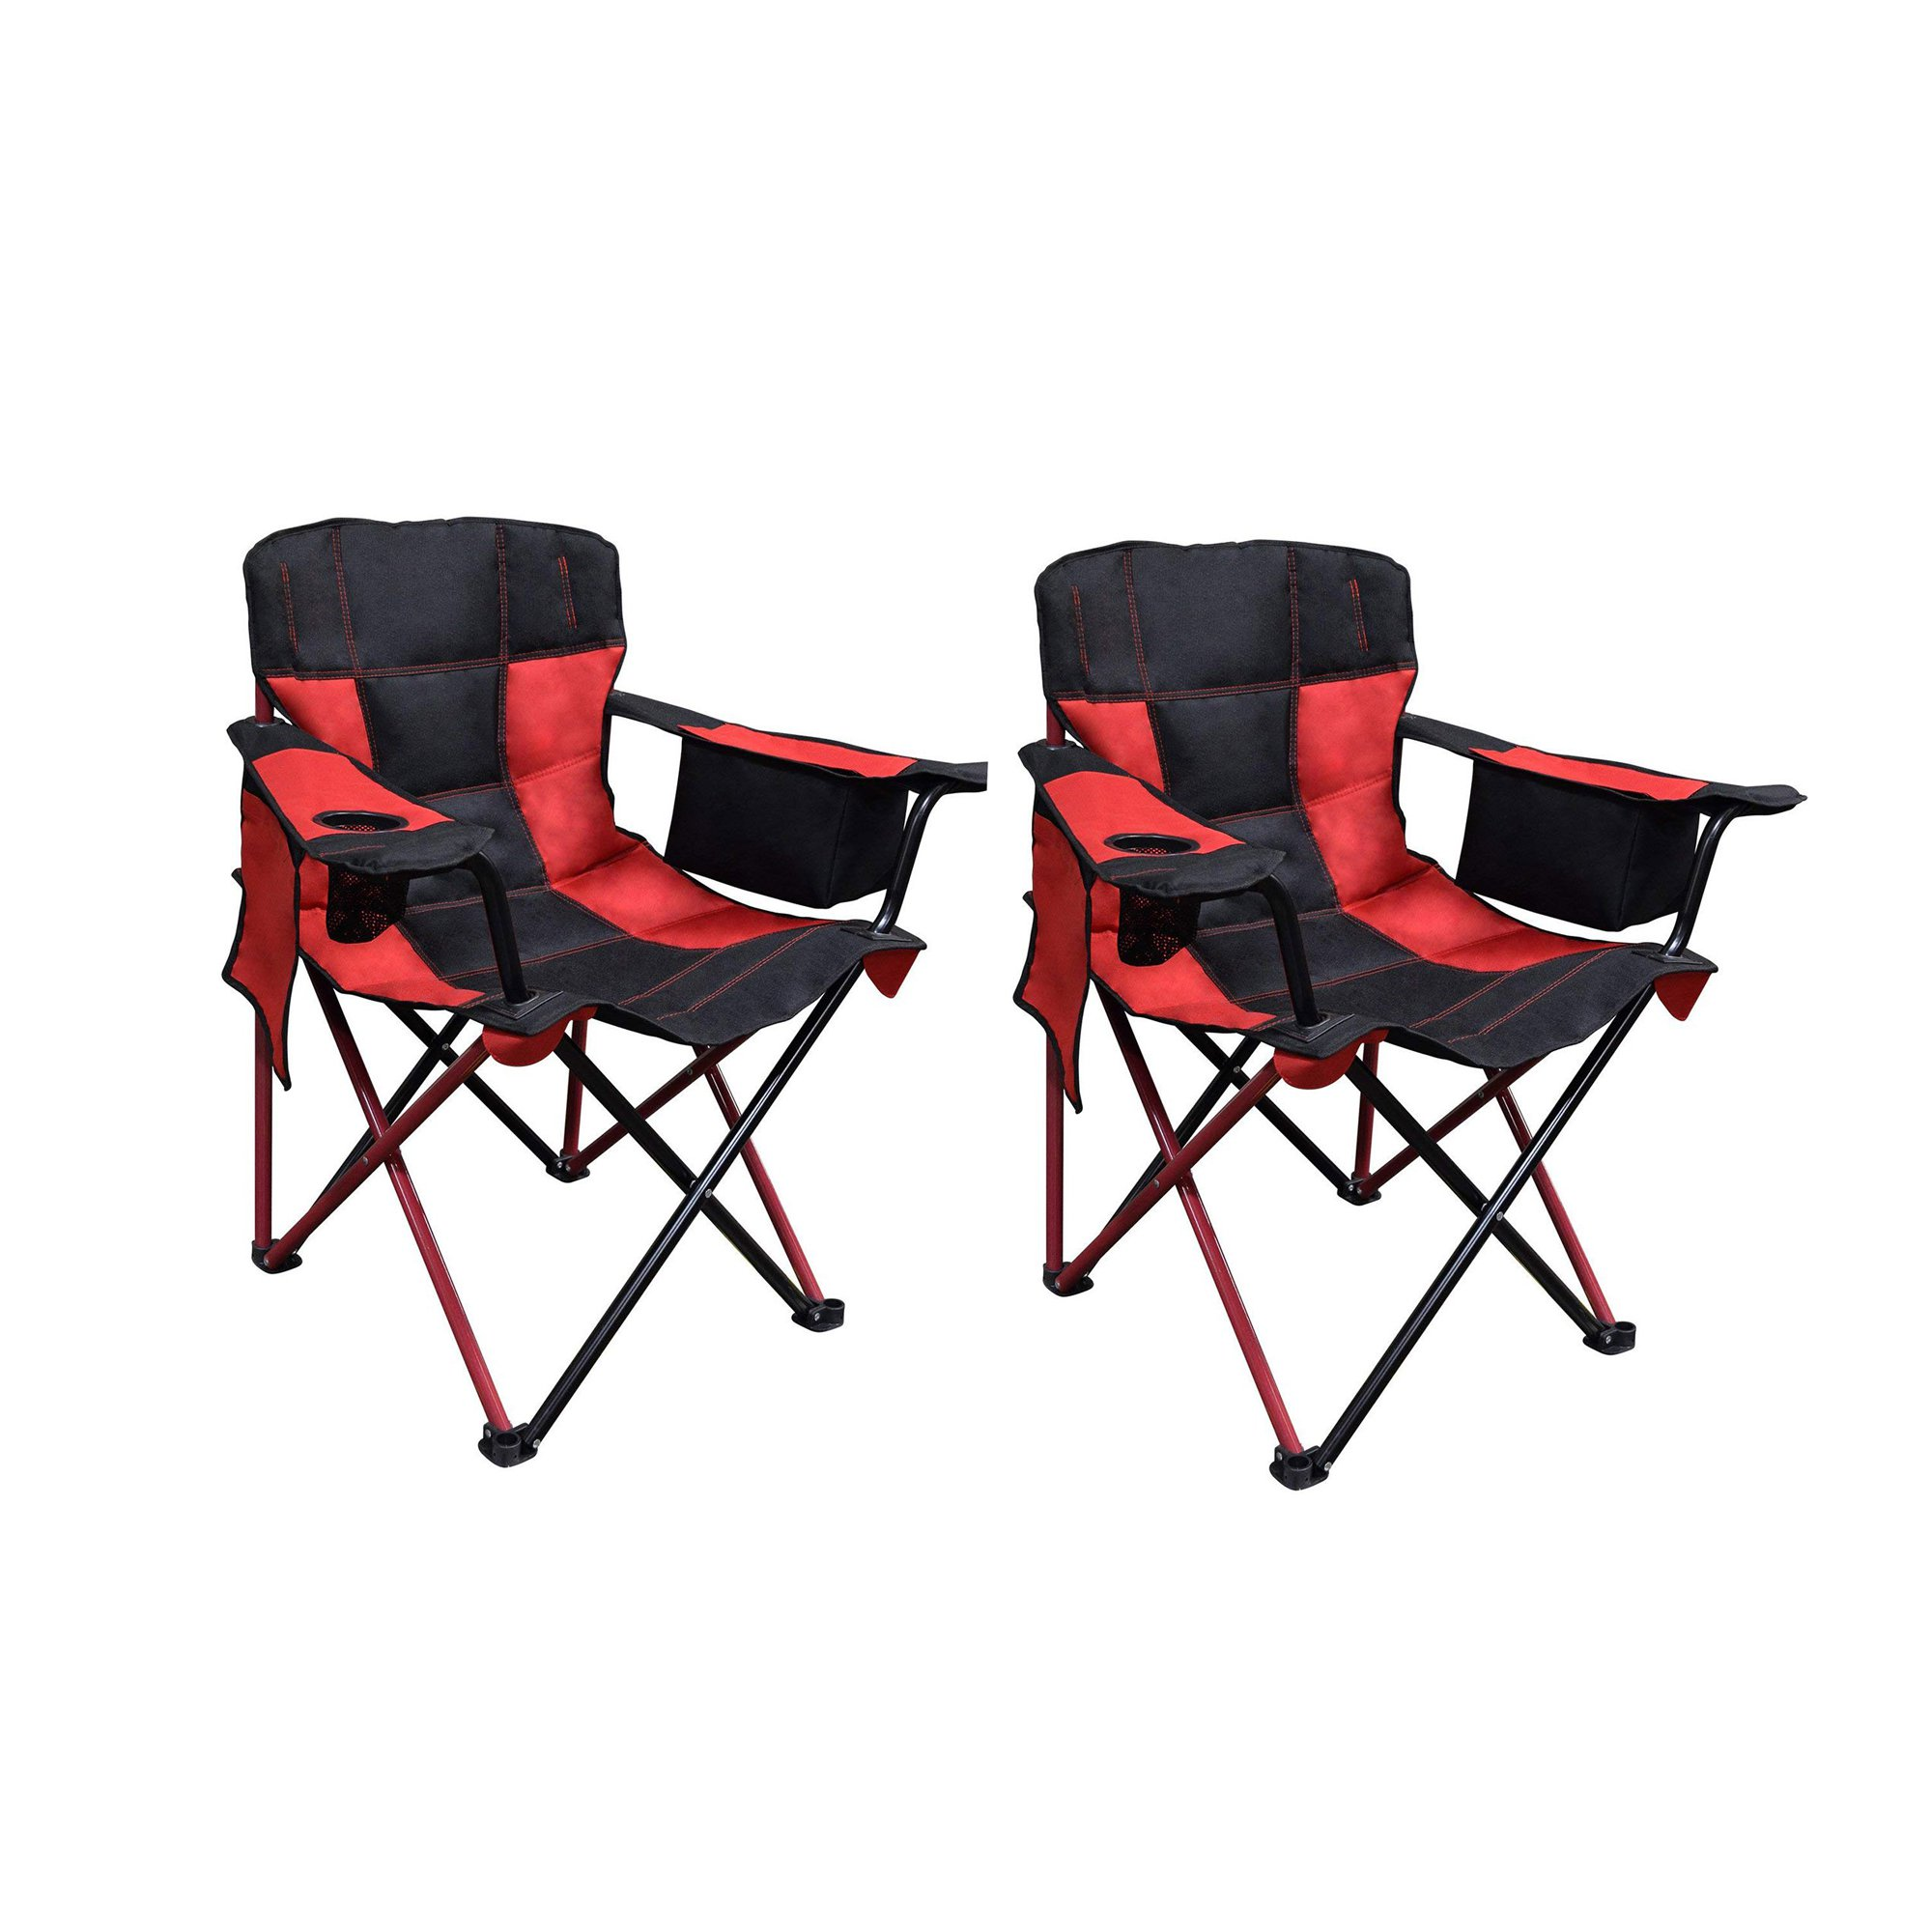 Camping Chair With Canopy Caravan Canopy Elite Quad Outdoor Camping Chair W Built In Cooler Red 2 Pack